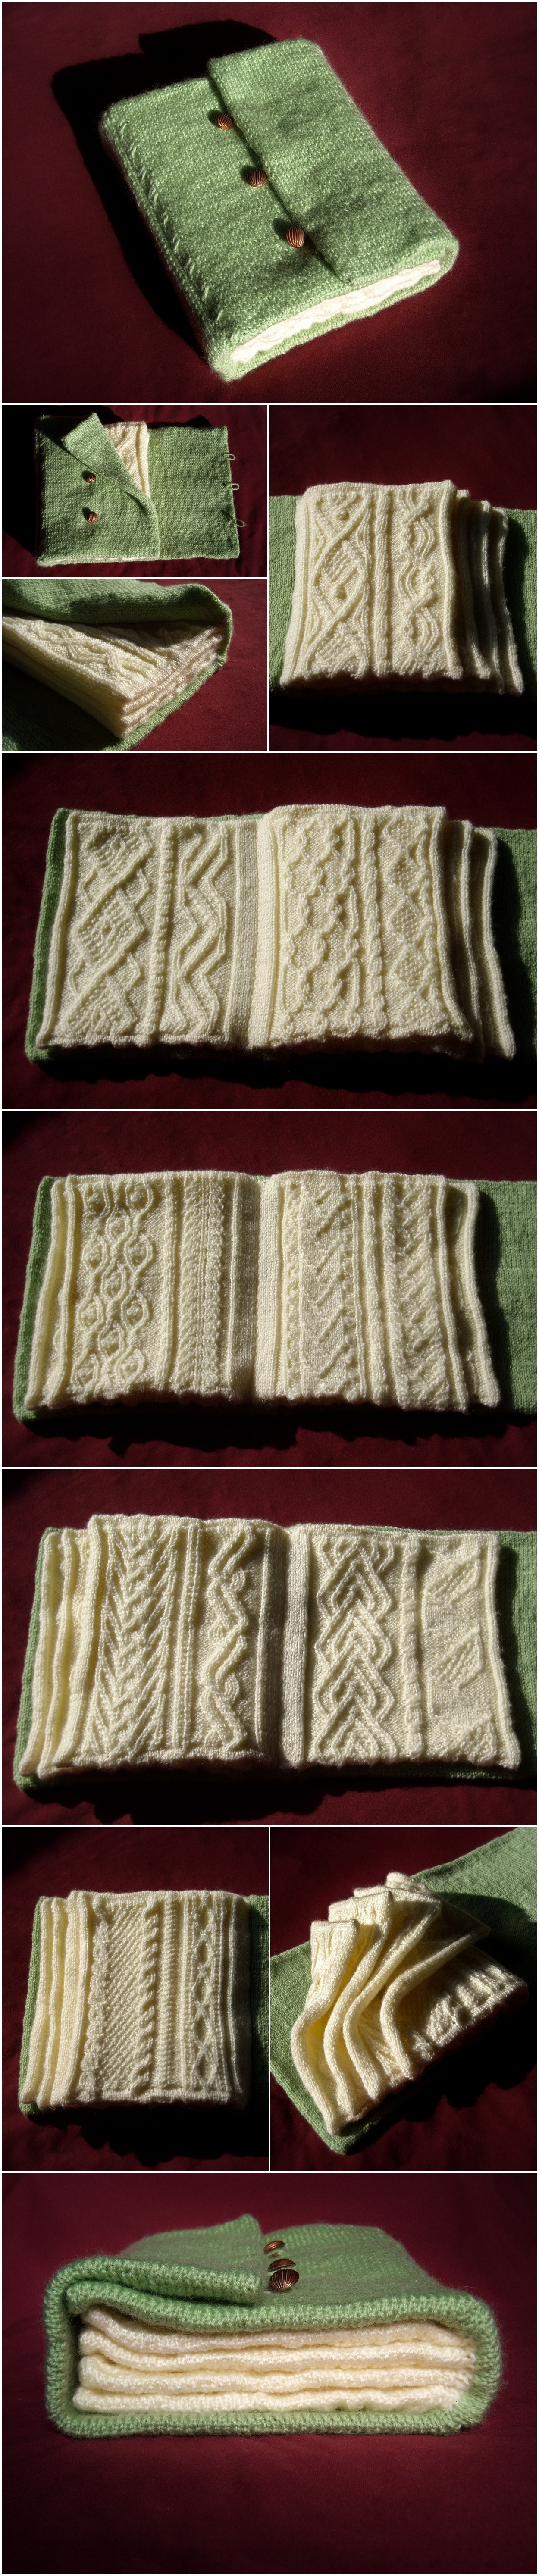 How To Make A Knitted Book Cover : The knitted book by tinywild on deviantart